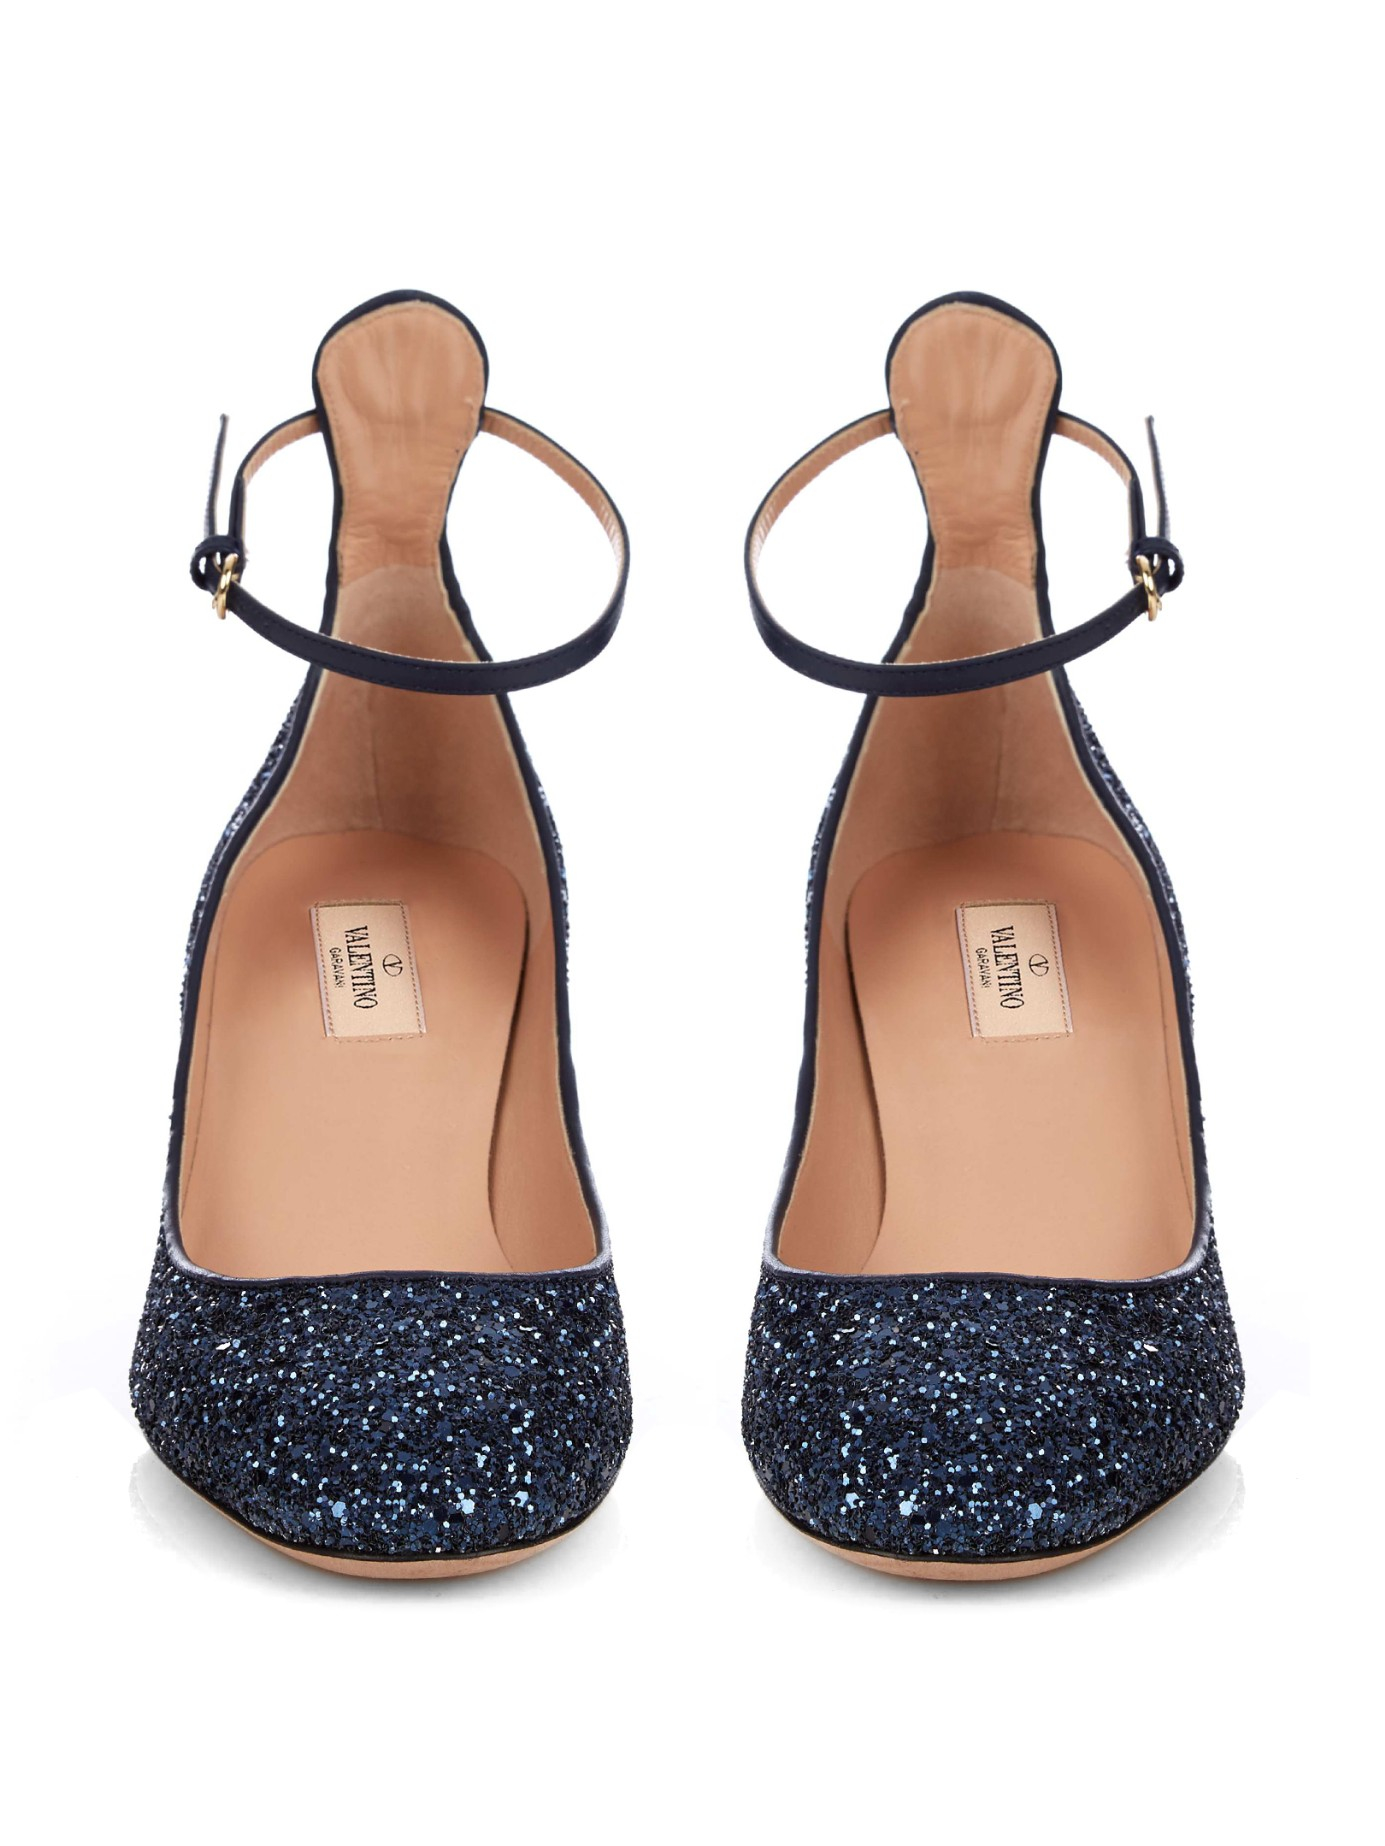 finishline Valentino Glitter Tan-go Pumps clearance finishline outlet release dates new cheap price free shipping top quality FgY95qZa